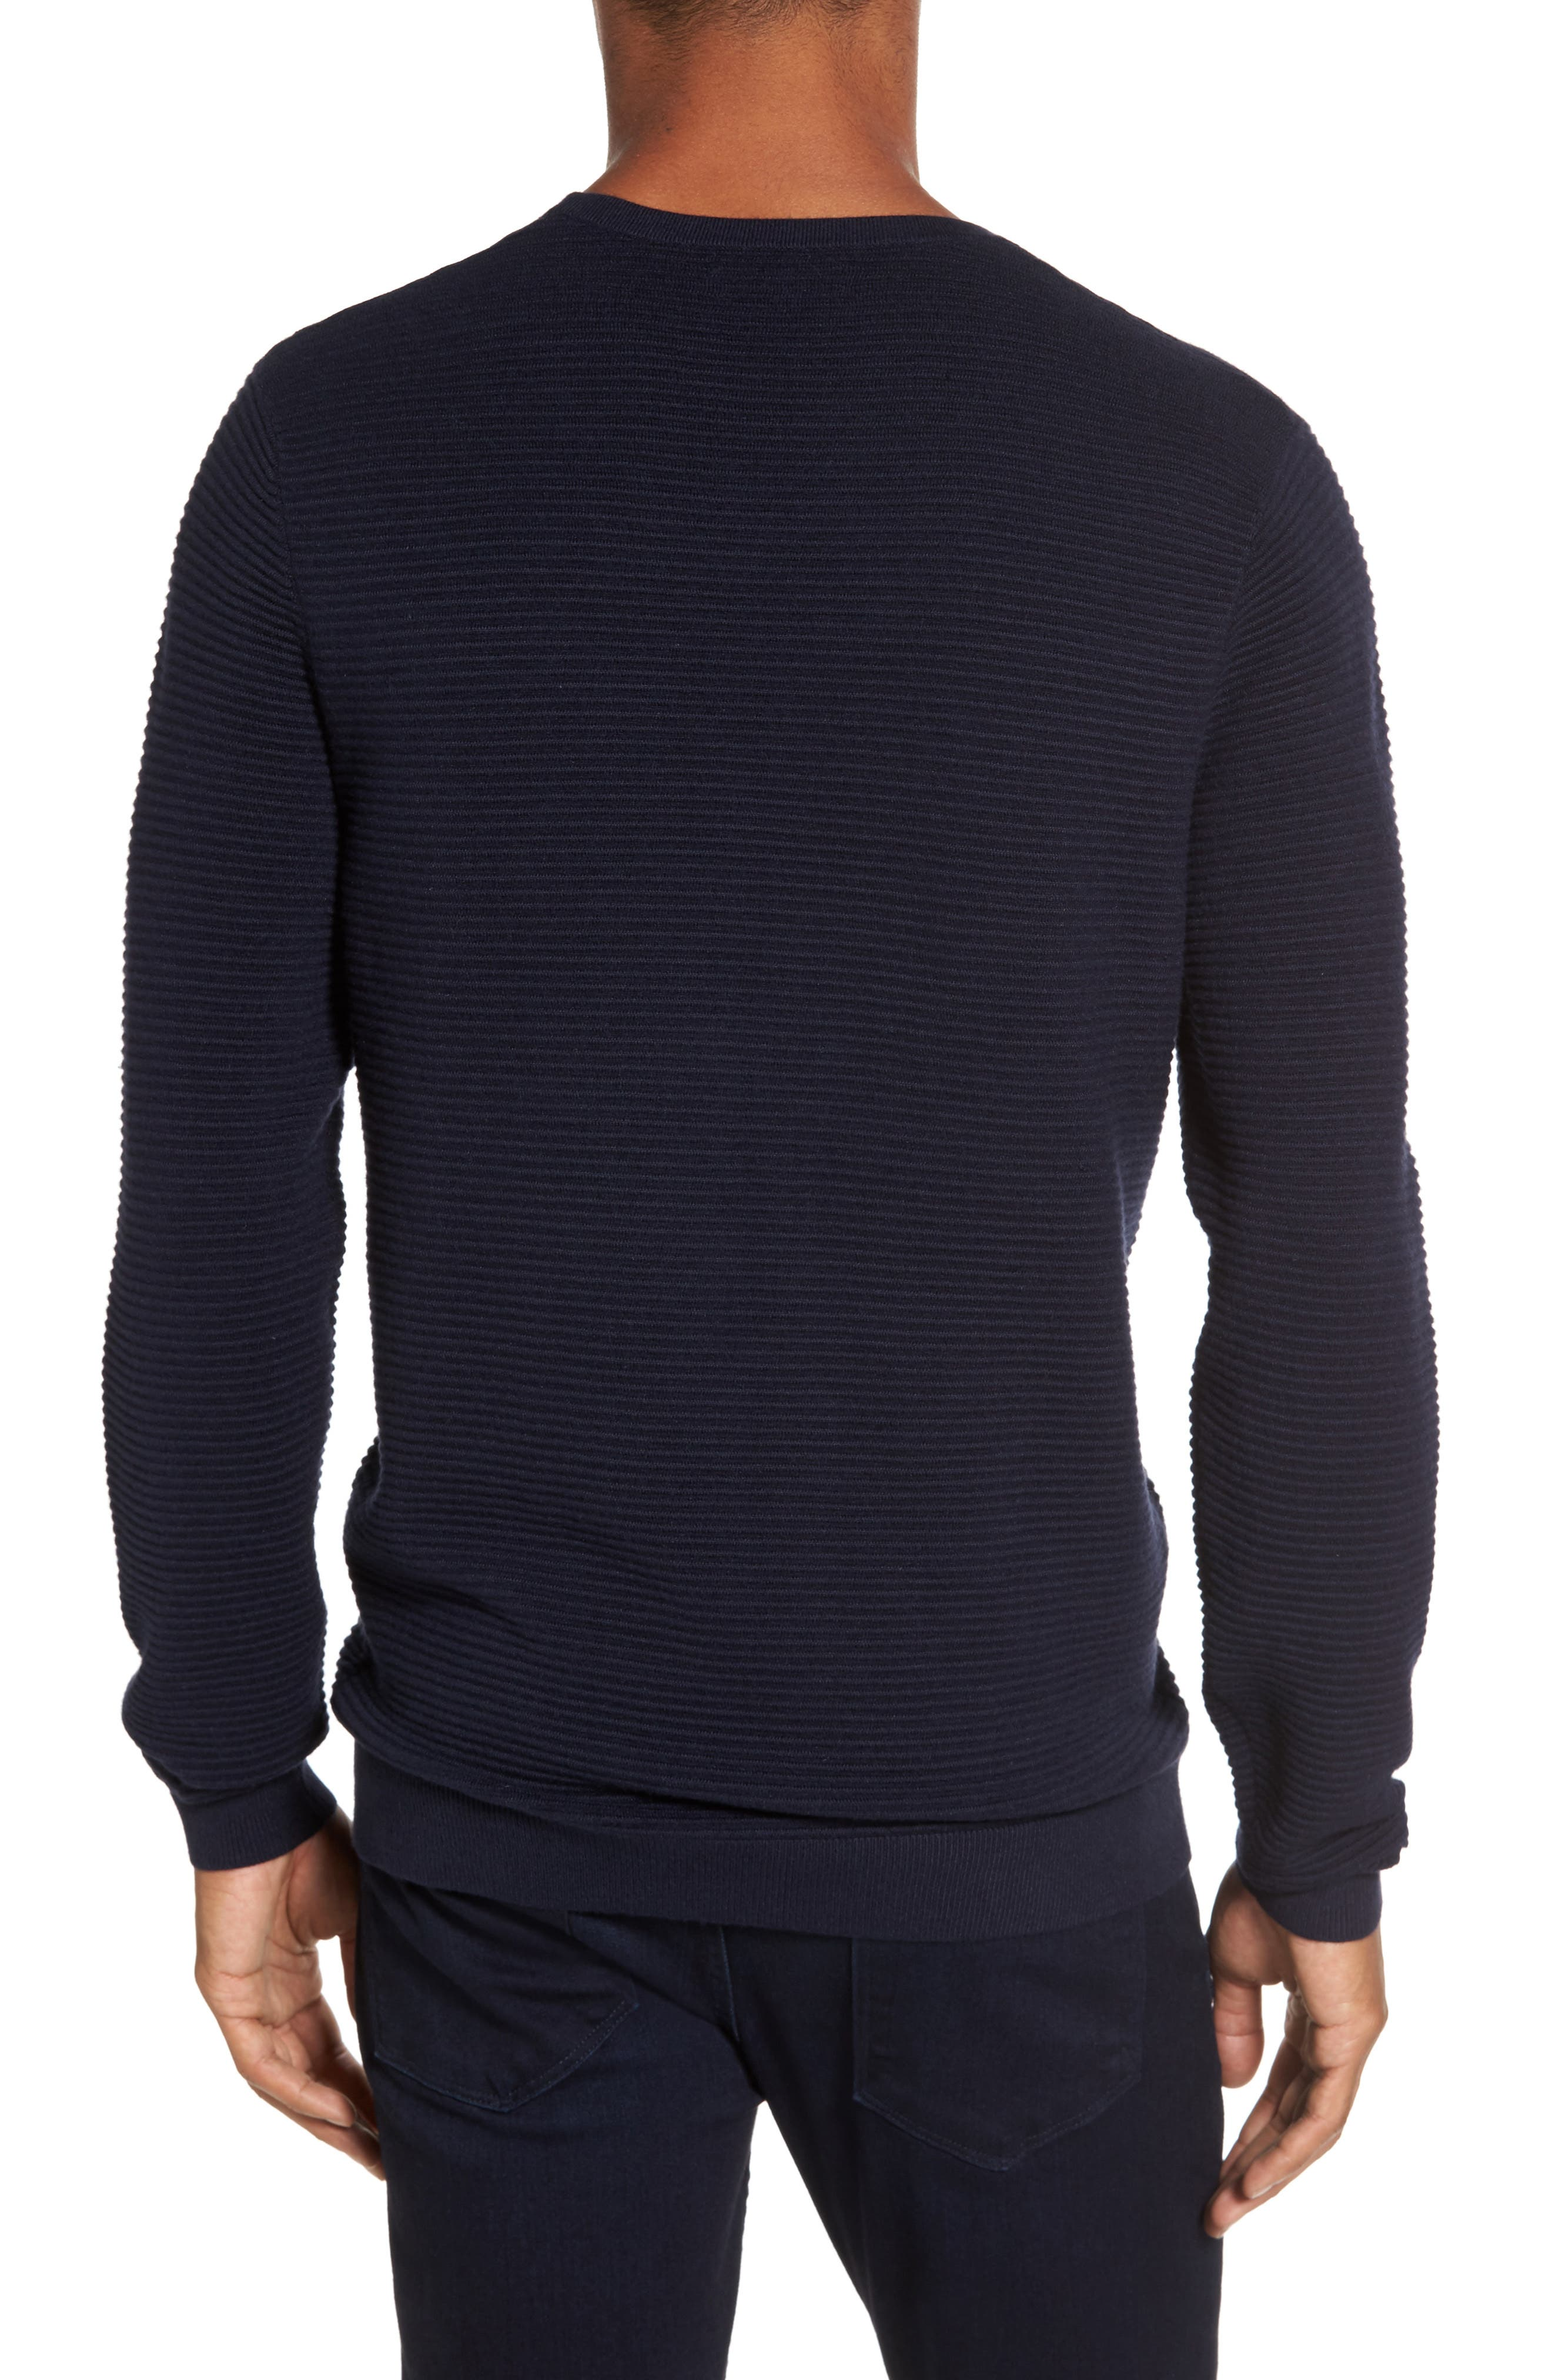 Ottoman Ribbed Crewneck Sweater,                             Alternate thumbnail 5, color,